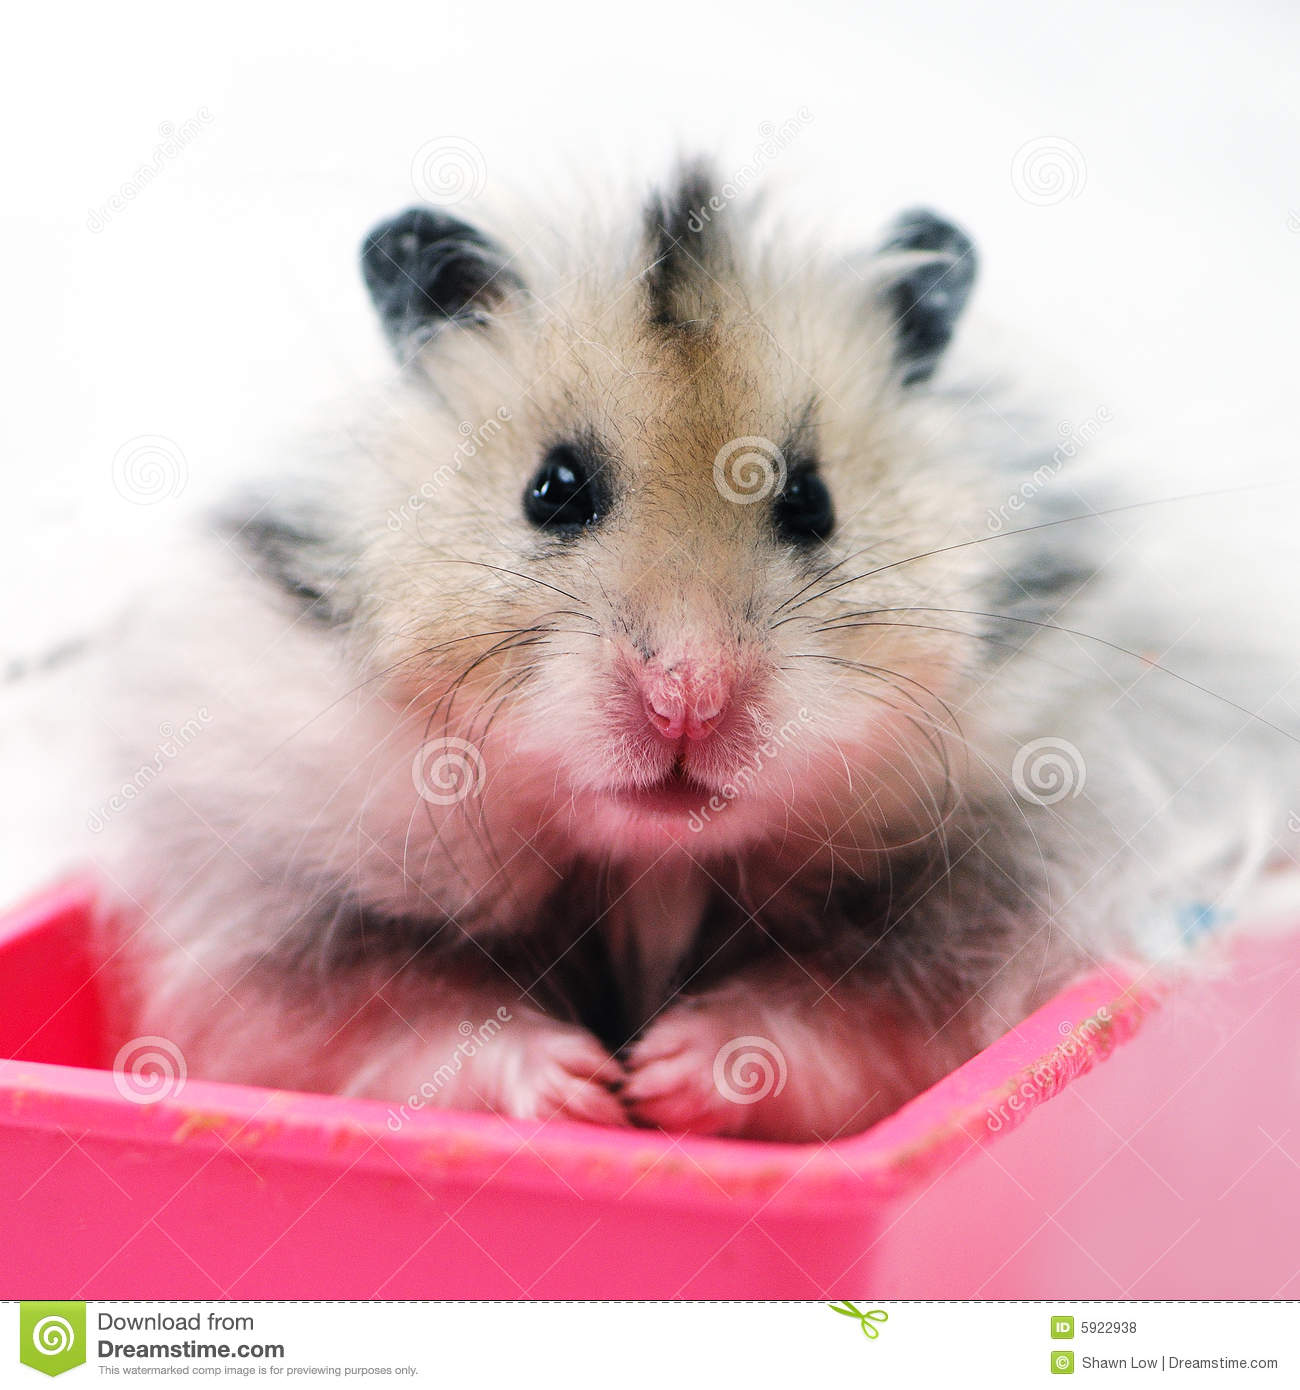 Syrian hamster sitting in a pink container in an al white backgroud.